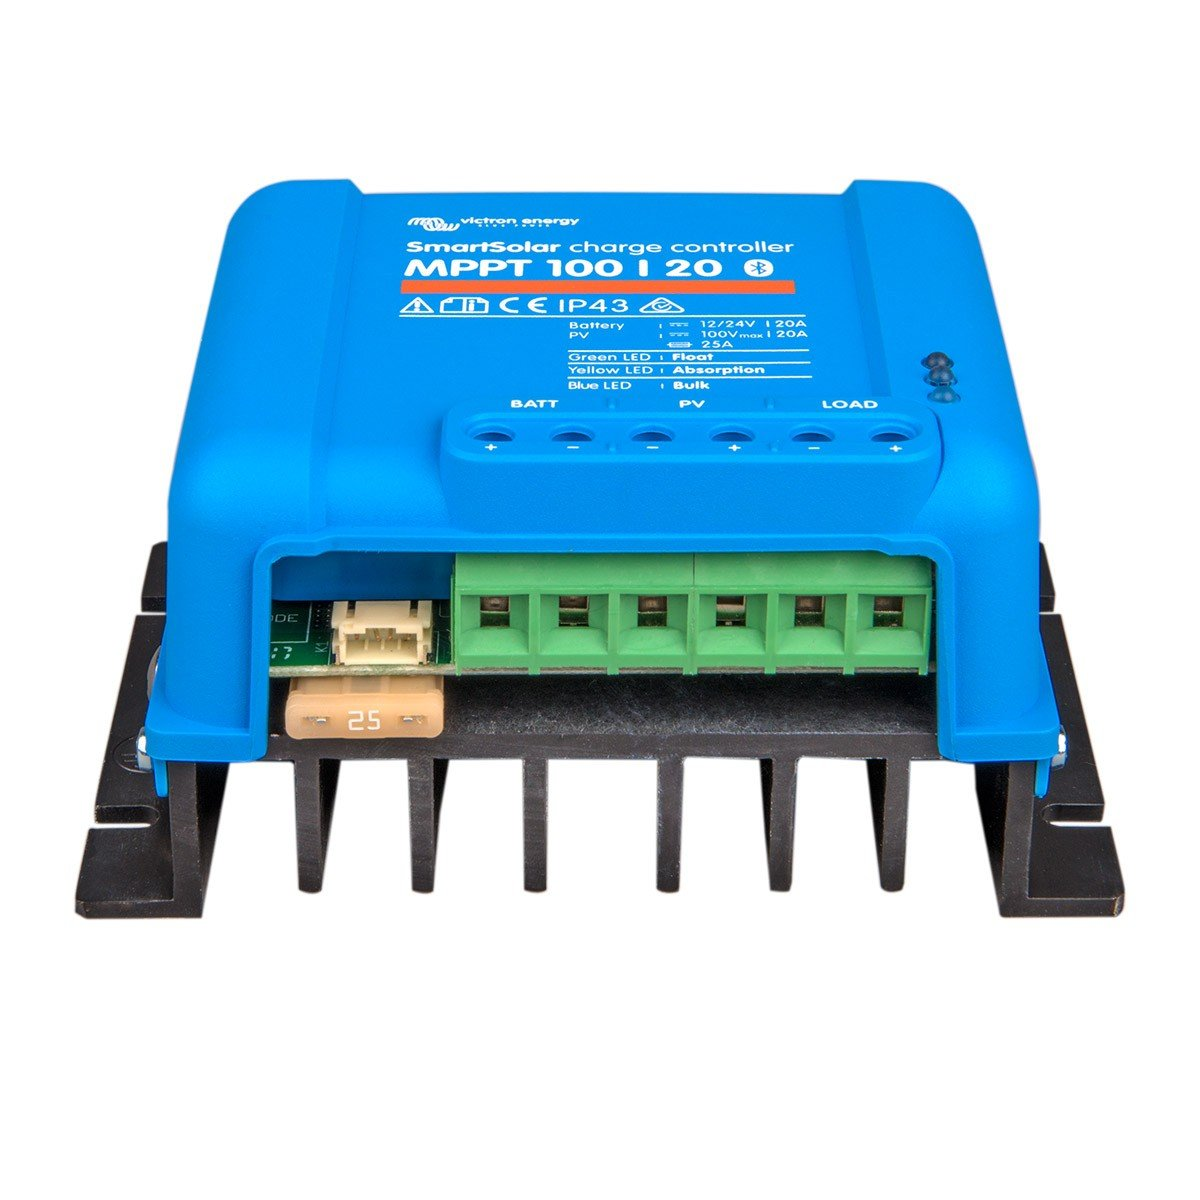 Victron SmartSolar MPPT 100/20 Solar Charge Controller 100V 20A with Bluetooth by Victron (Image #3)